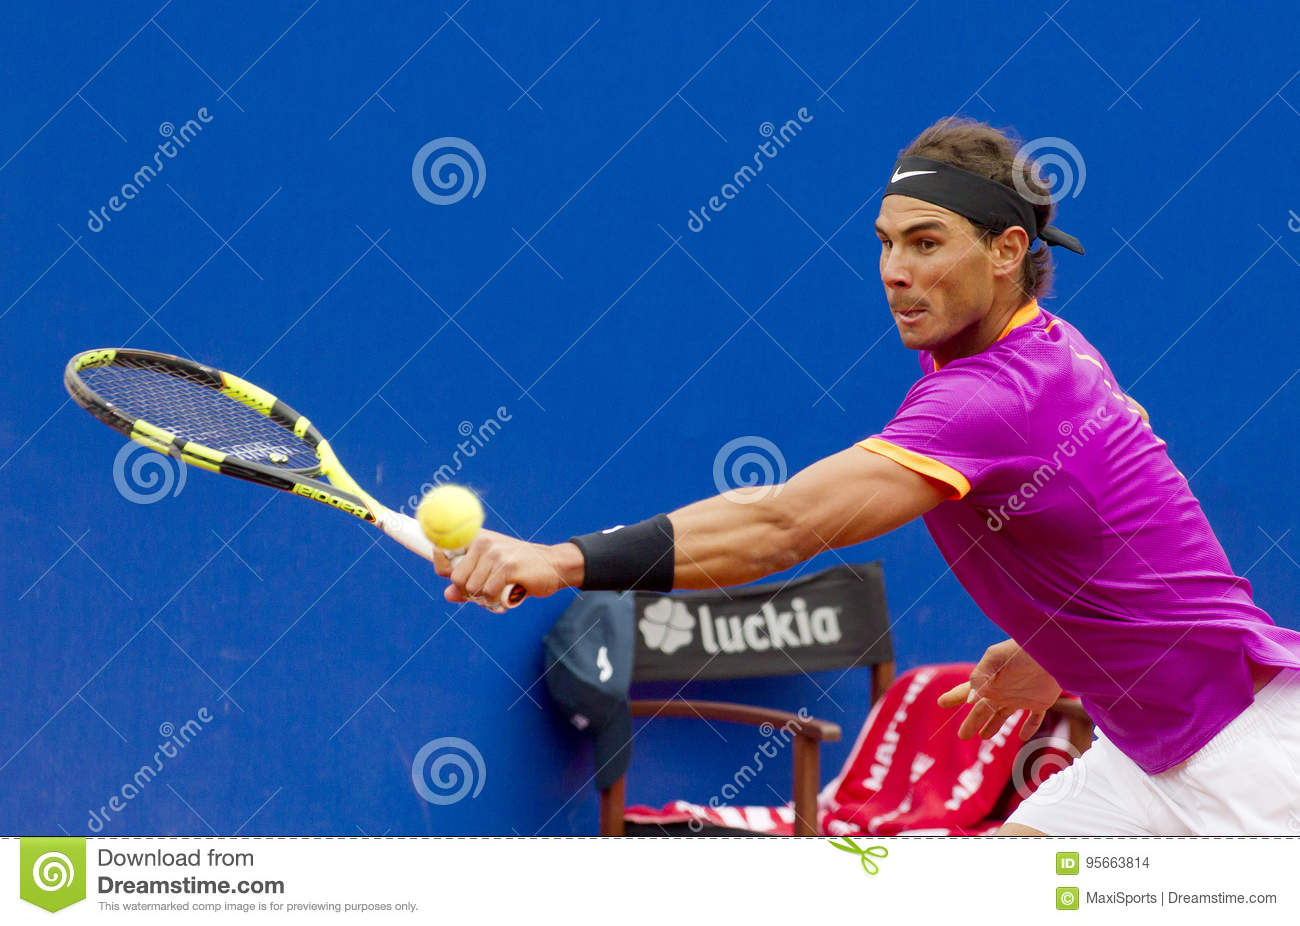 2 924 Nadal Photos Free Royalty Free Stock Photos From Dreamstime